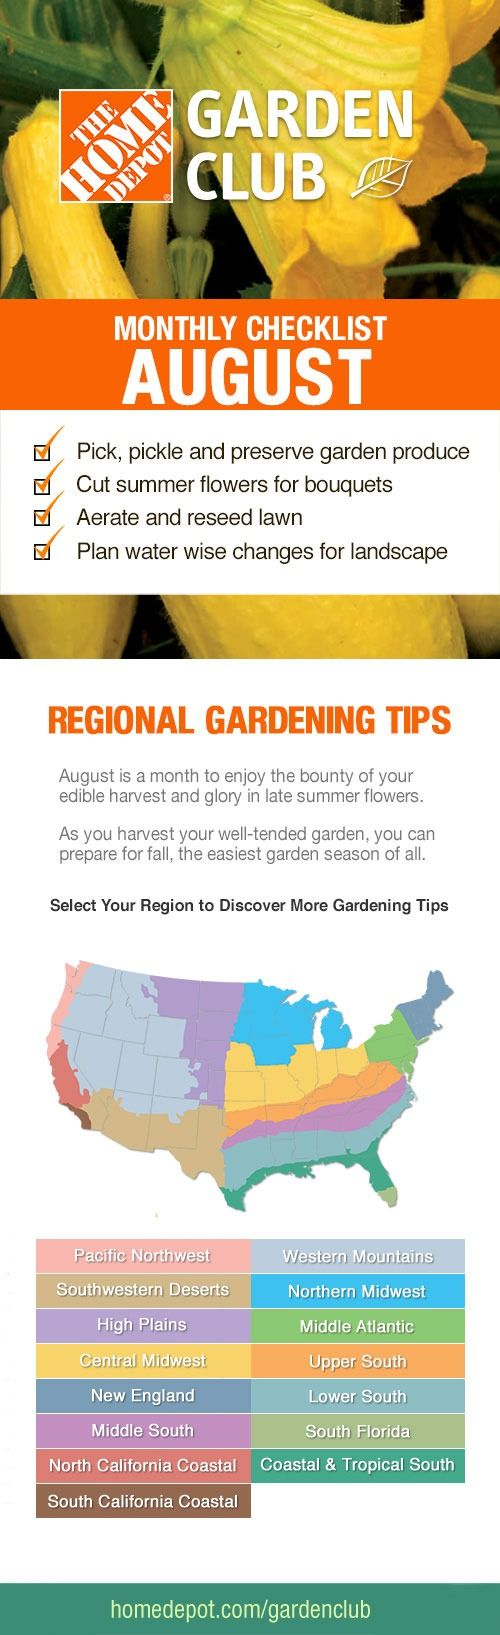 In our August Gardening Checklist: It's time to preserve your summer garden produce; cut your summer flowers for bouquets; aerate and reseed your lawn; and plan water wise changes for your landscape. Learn about those topics, along with regional gardening tips on The Home Depot's Garden Club.